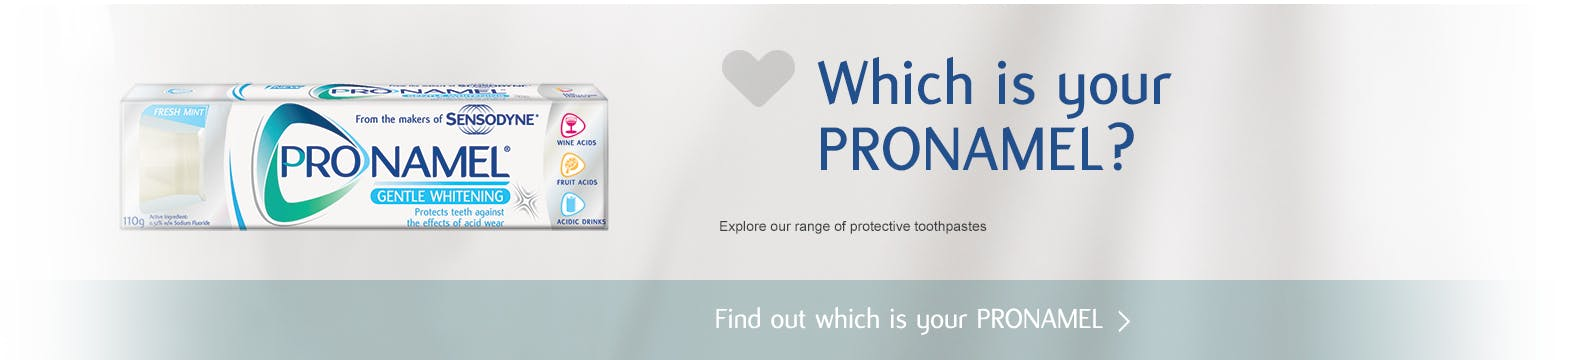 Find out which is your Pronamel